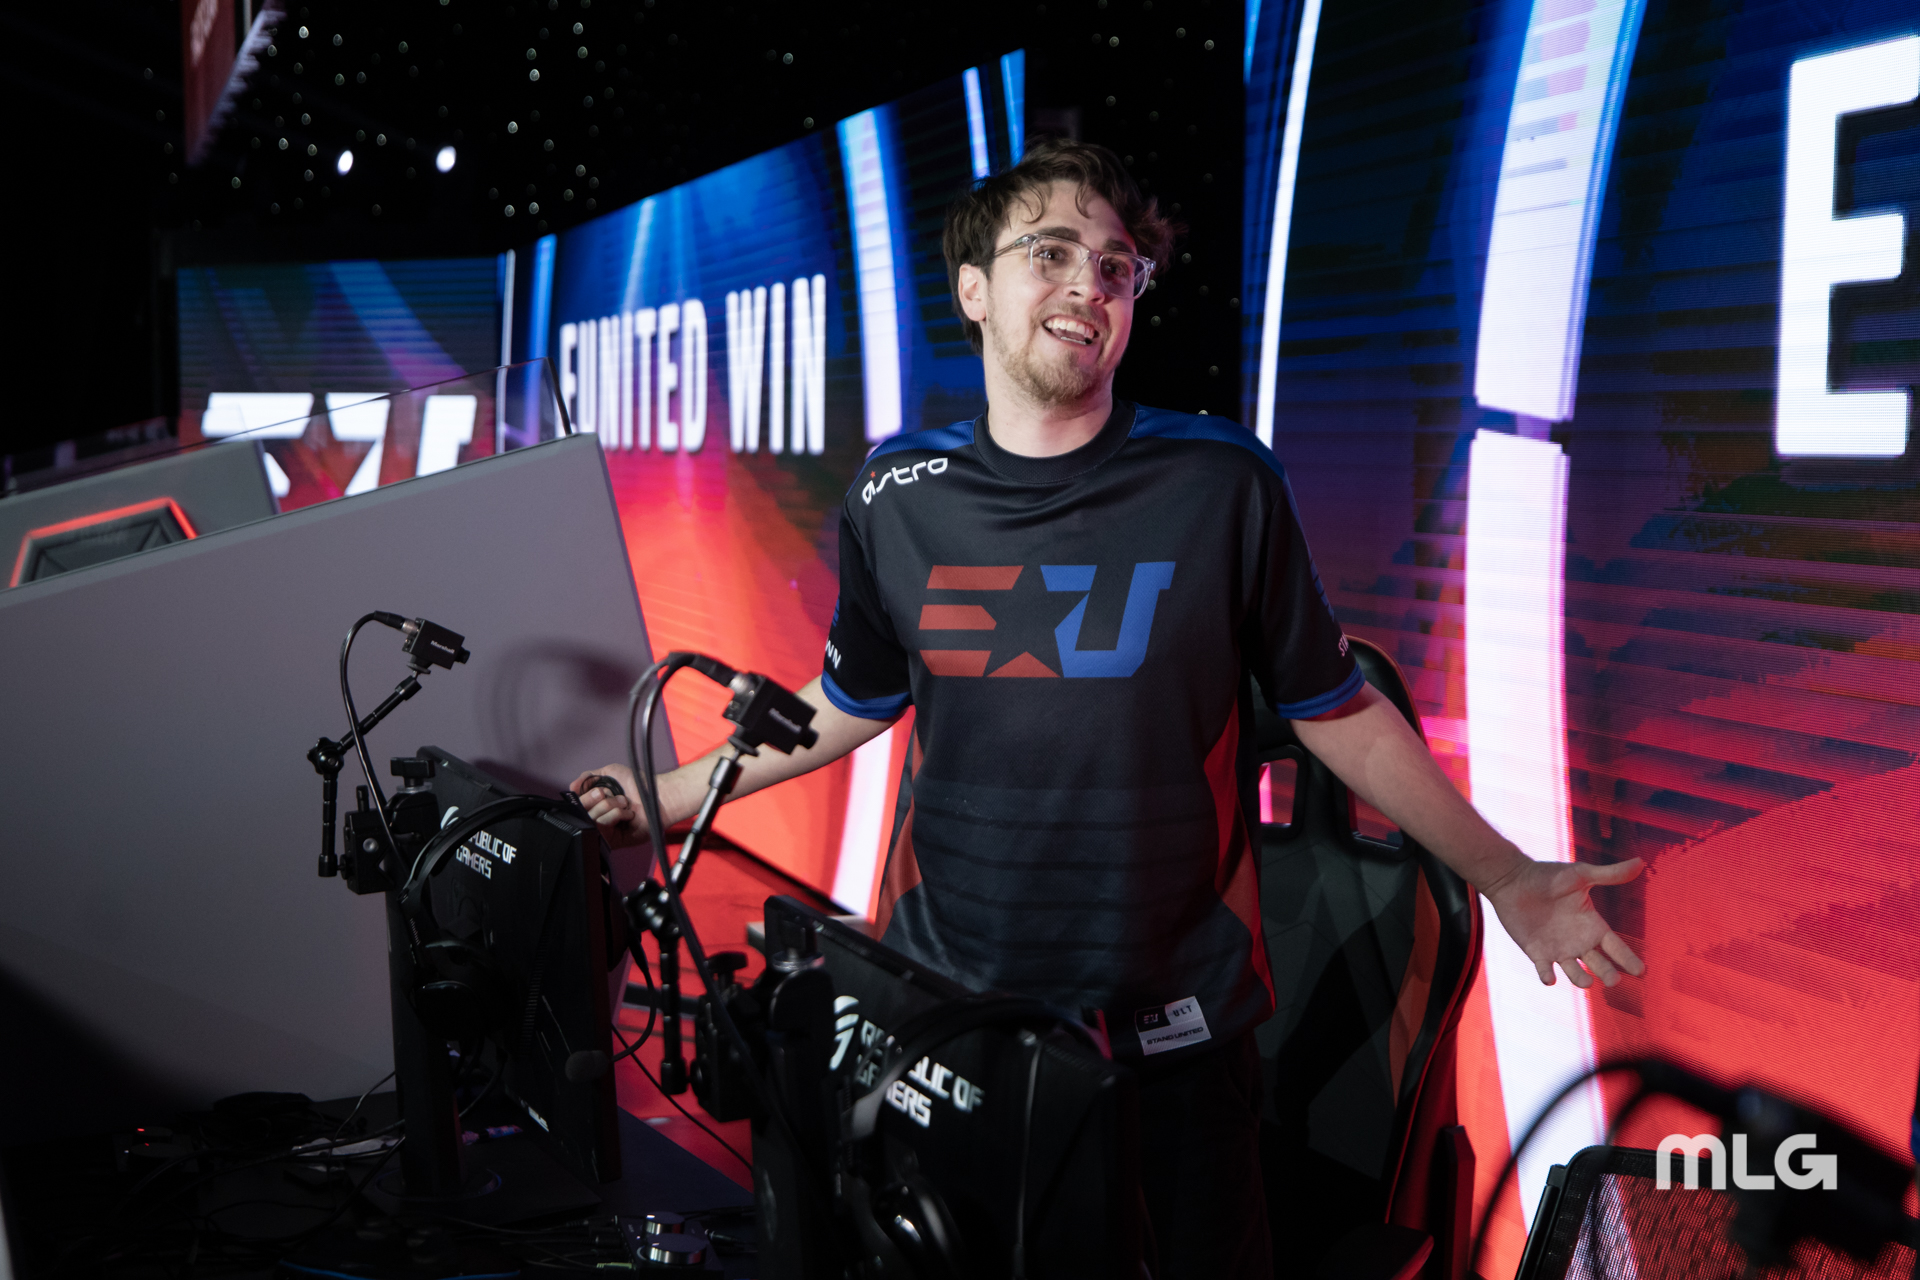 Clayster_PlayoffProLeague